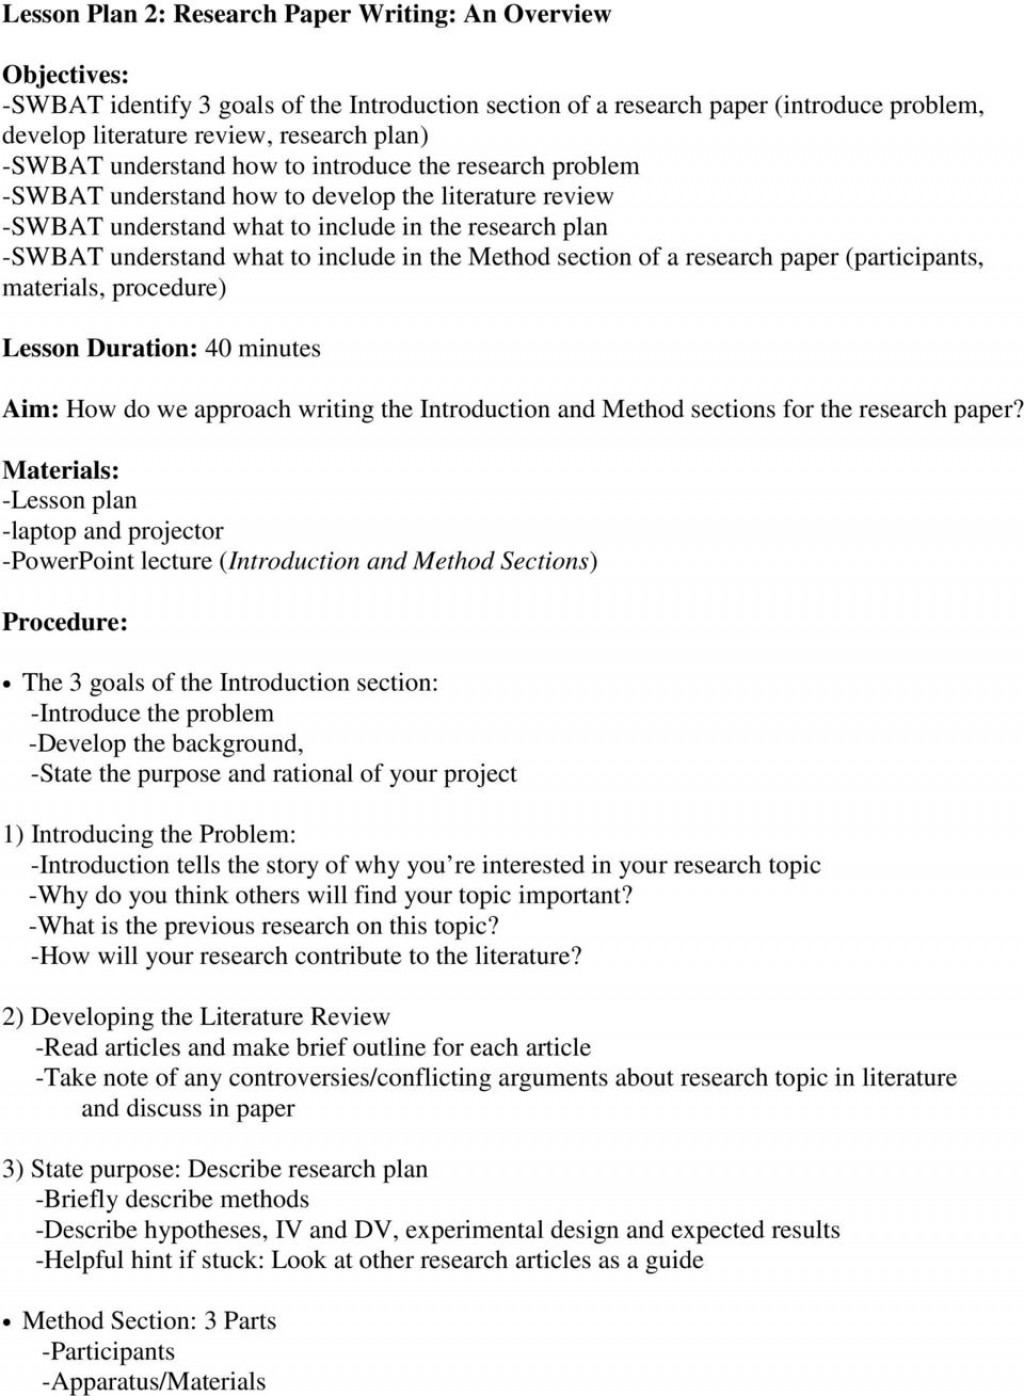 022 Page 16 Introduction To Research Paper Outstanding Ppt How Write In An For A Powerpoint Large